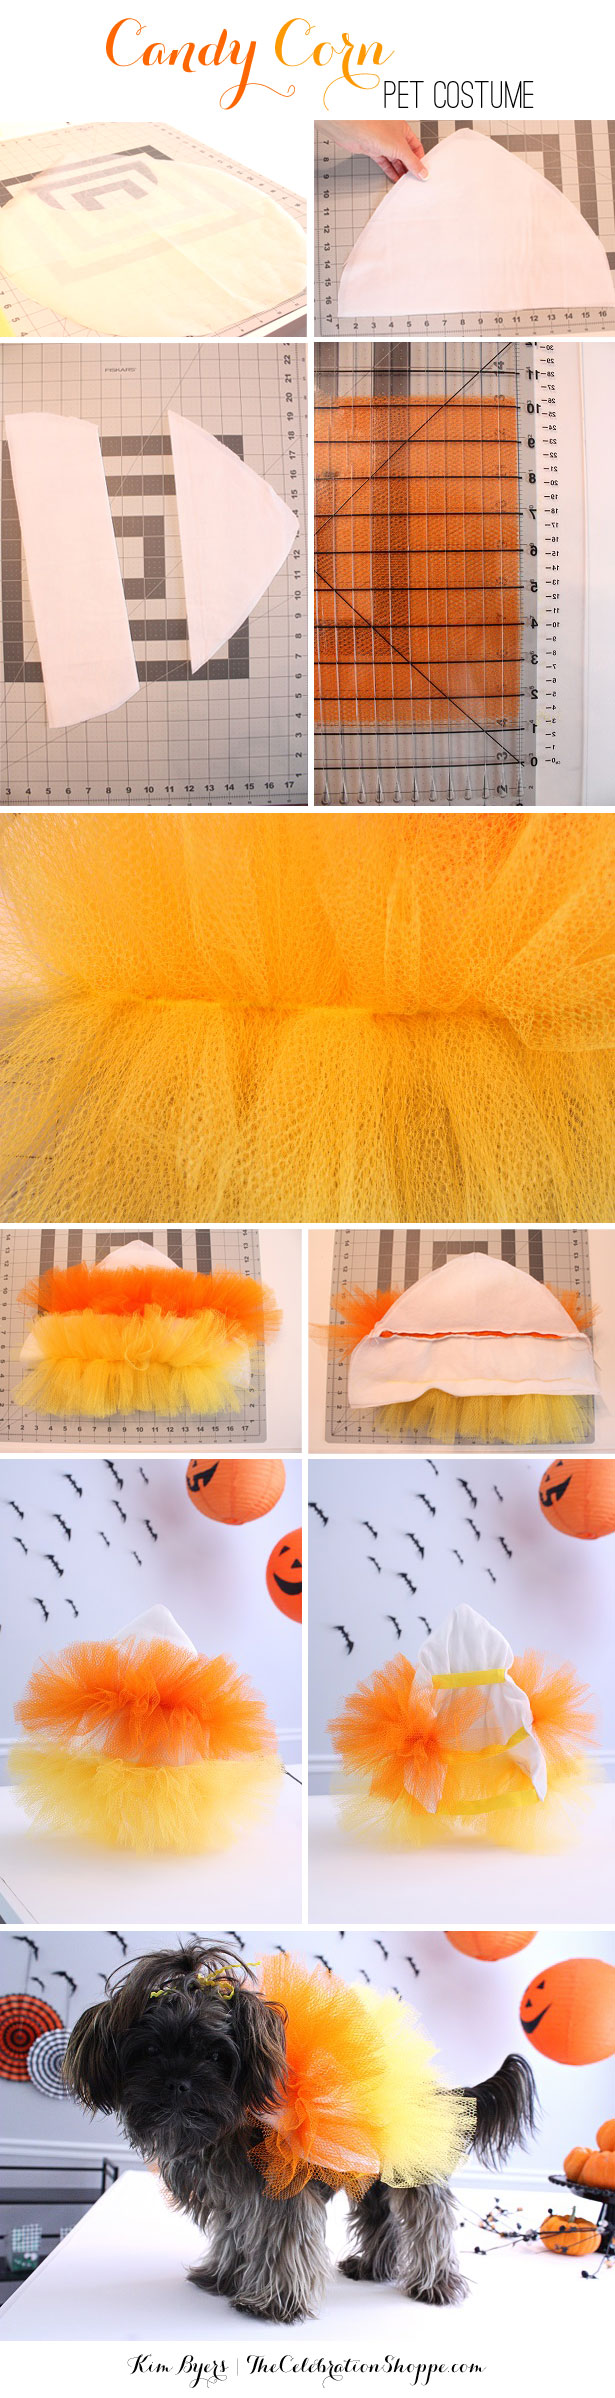 How To Make A Candy Corn Pet Costume | Kim Byers